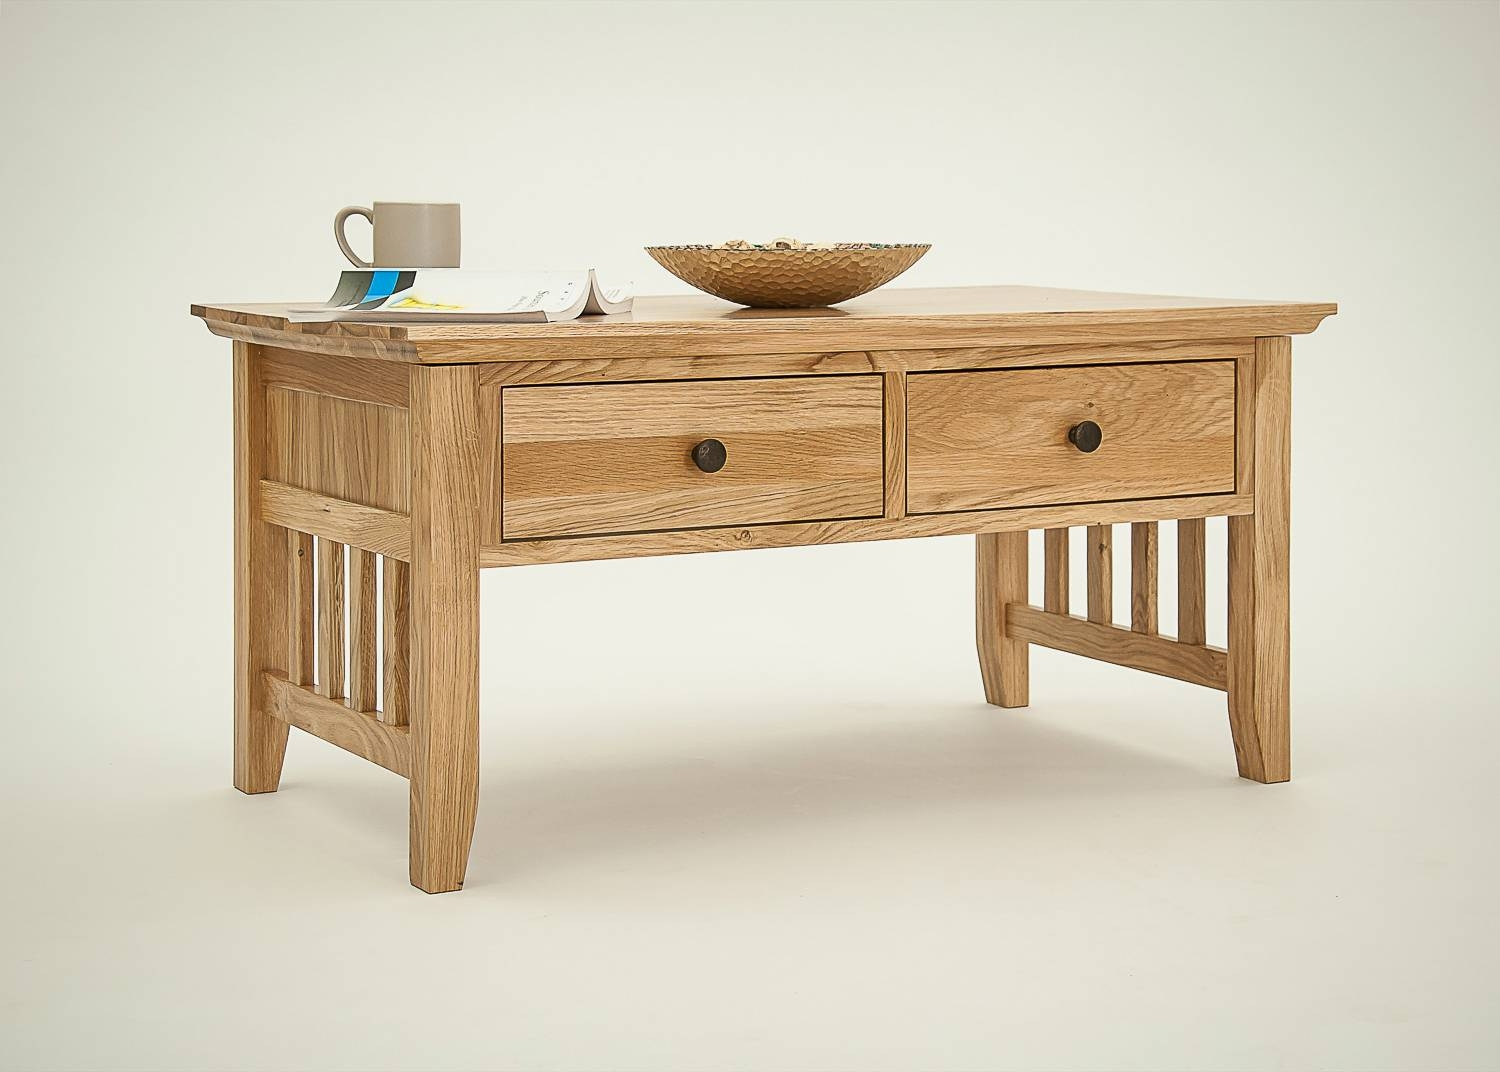 Hereford Rustic Oak Coffee Table. Shop Online. In-Store. Mobile intended for Oak Wood Coffee Tables (Image 8 of 15)